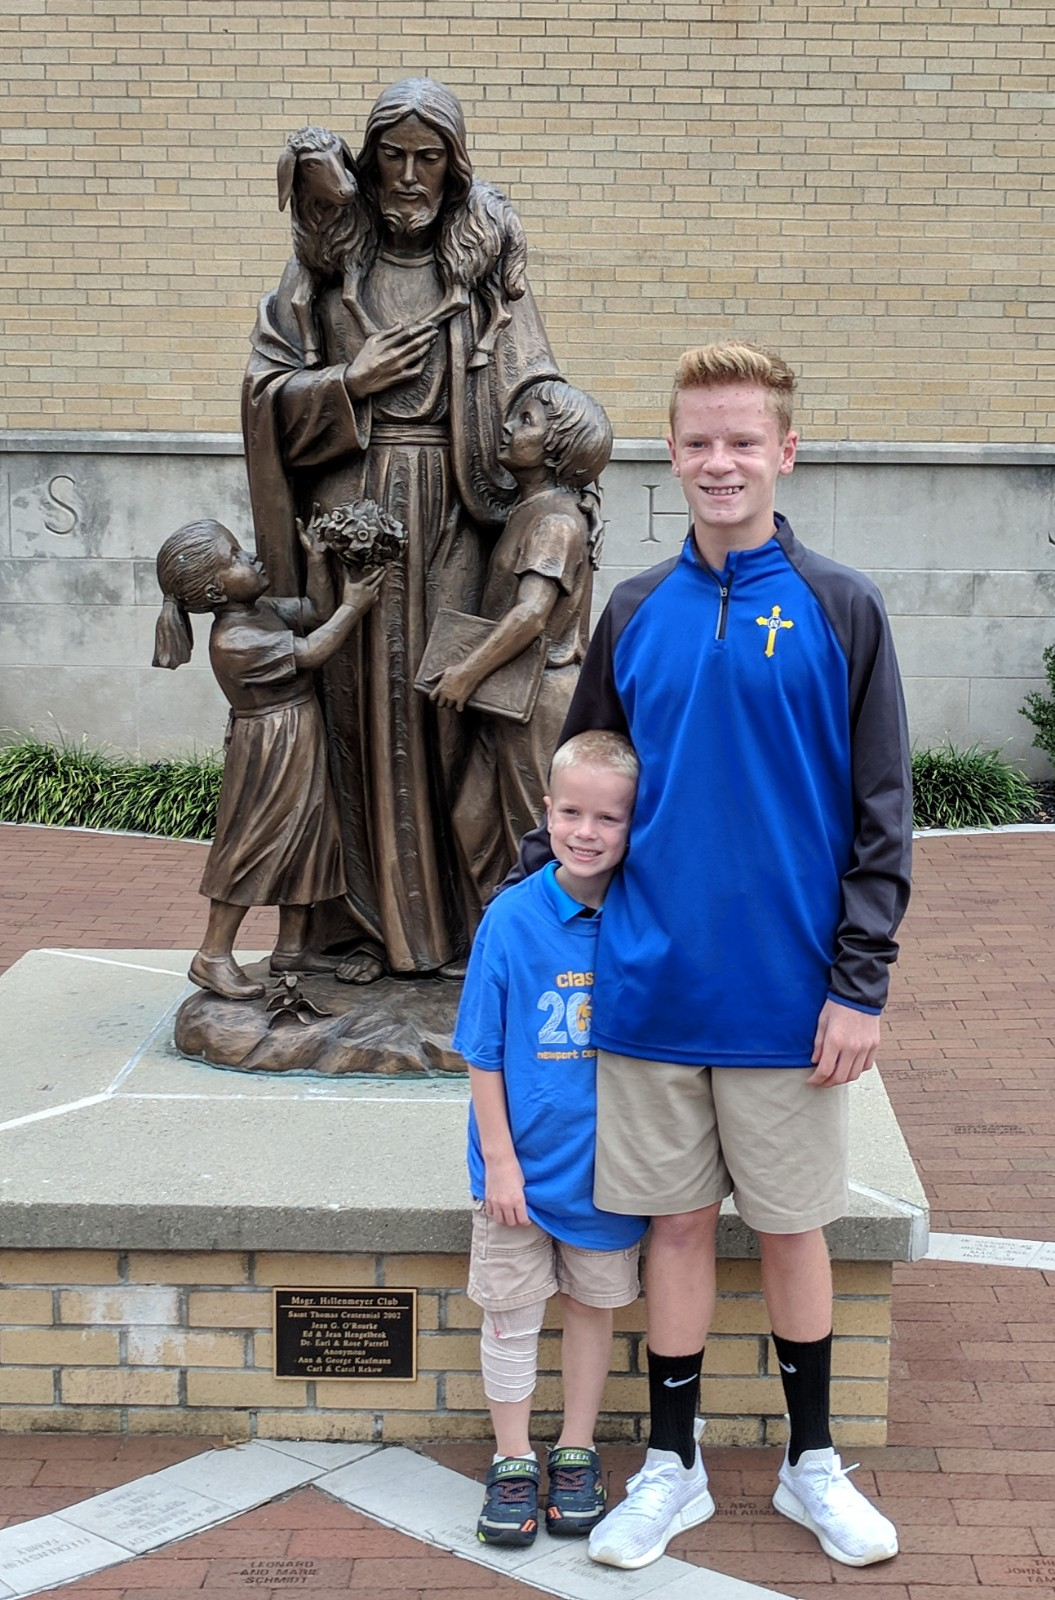 Little Brother, Mason Drury was excited to have his big brother Dominic come to visit his school, St. Thomas.